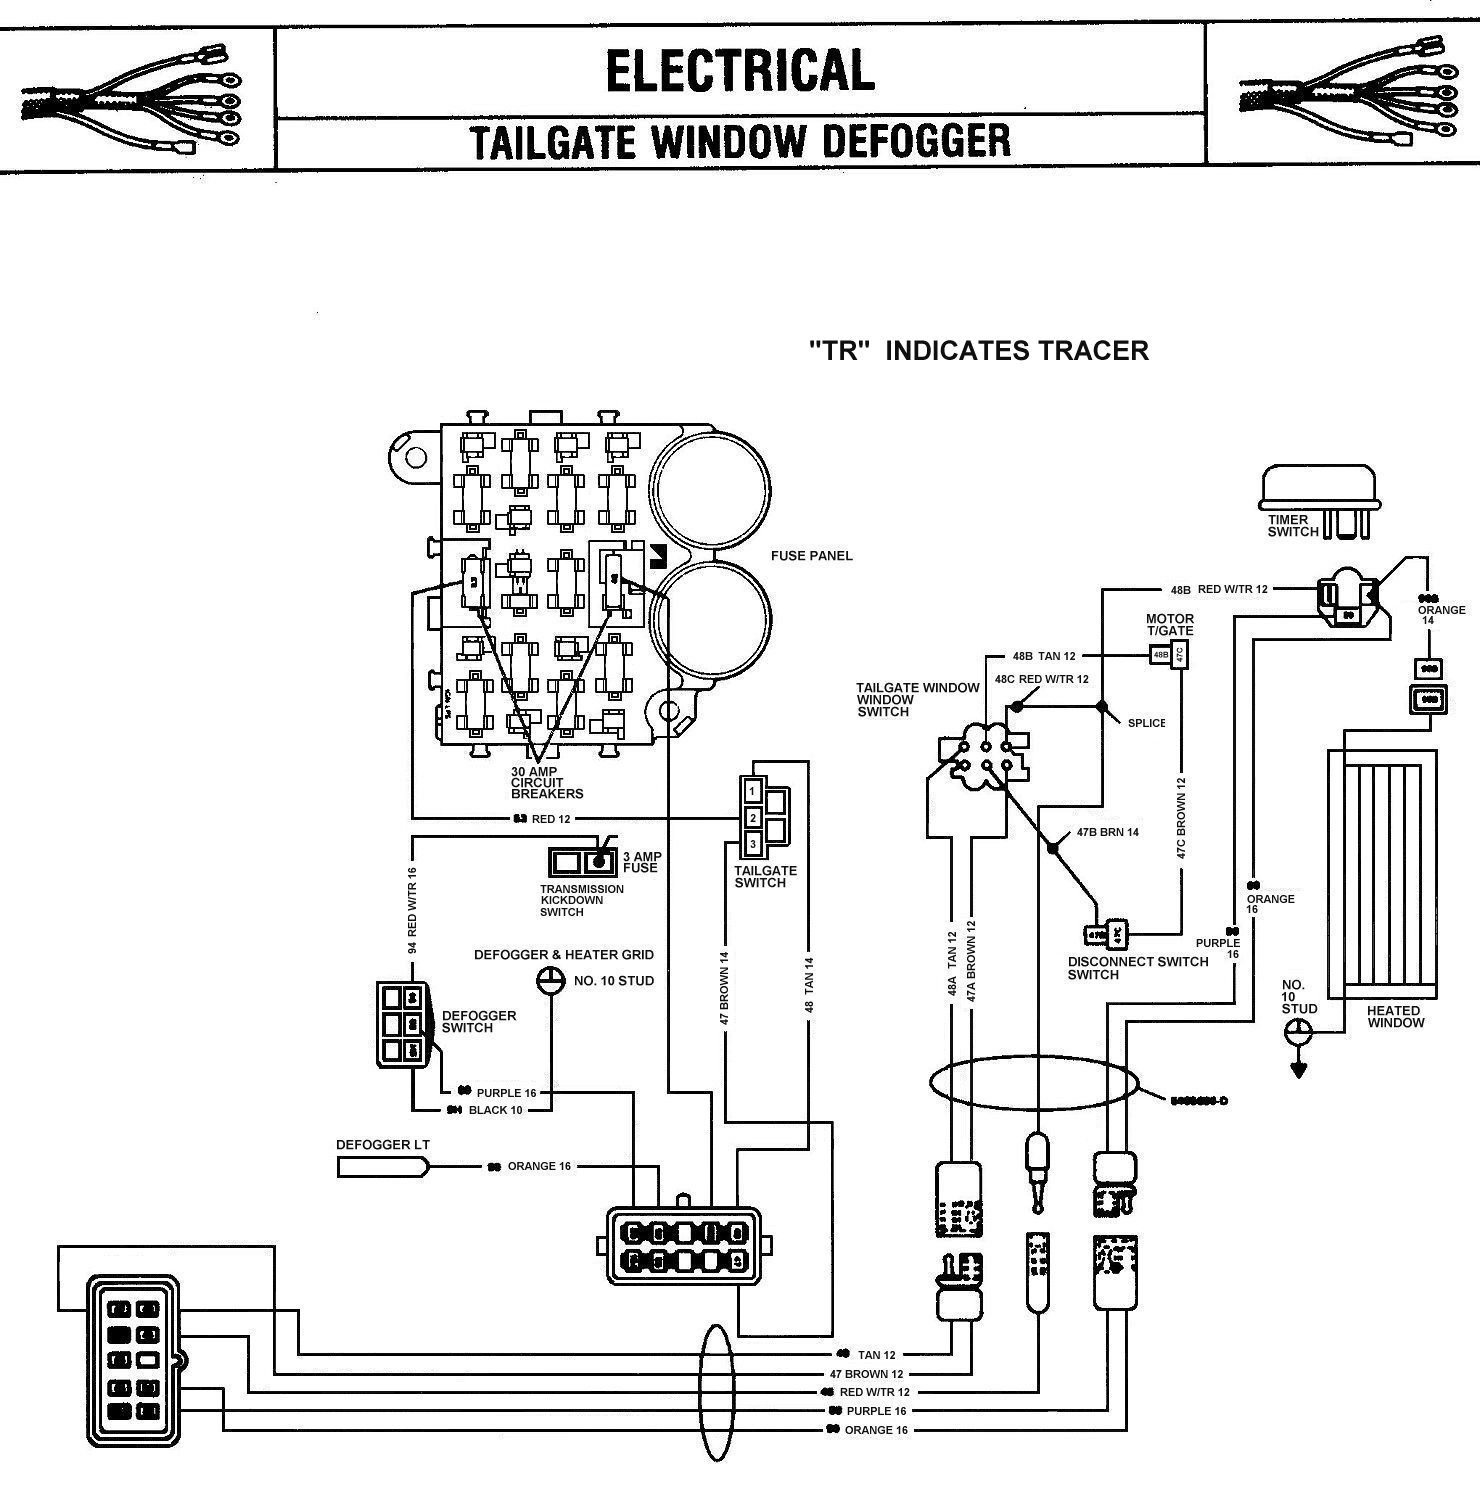 Tom 'Oljeep' Collins FSJ Wiring Page on dodge pickup wiring diagram, dodge ram electrical diagram, dodge ignition wiring diagram, 1984 dodge d150 wiring diagram, 01 dodge ram water pump, 1985 dodge d150 wiring diagram, 01 kia rio wiring diagram, 01 dodge ram firing order, 01 dodge ram sub box, dodge ram 1500 diagram, 01 dodge ram seats, 01 dodge ram wiper motor, dodge infinity wiring diagram, 01 dodge ram brakes, 01 ford windstar wiring diagram, 01 dodge ram vacuum routing, 01 mitsubishi eclipse wiring diagram, 01 opel astra wiring diagram, 01 dodge ram headlights, 01 lincoln continental wiring diagram,